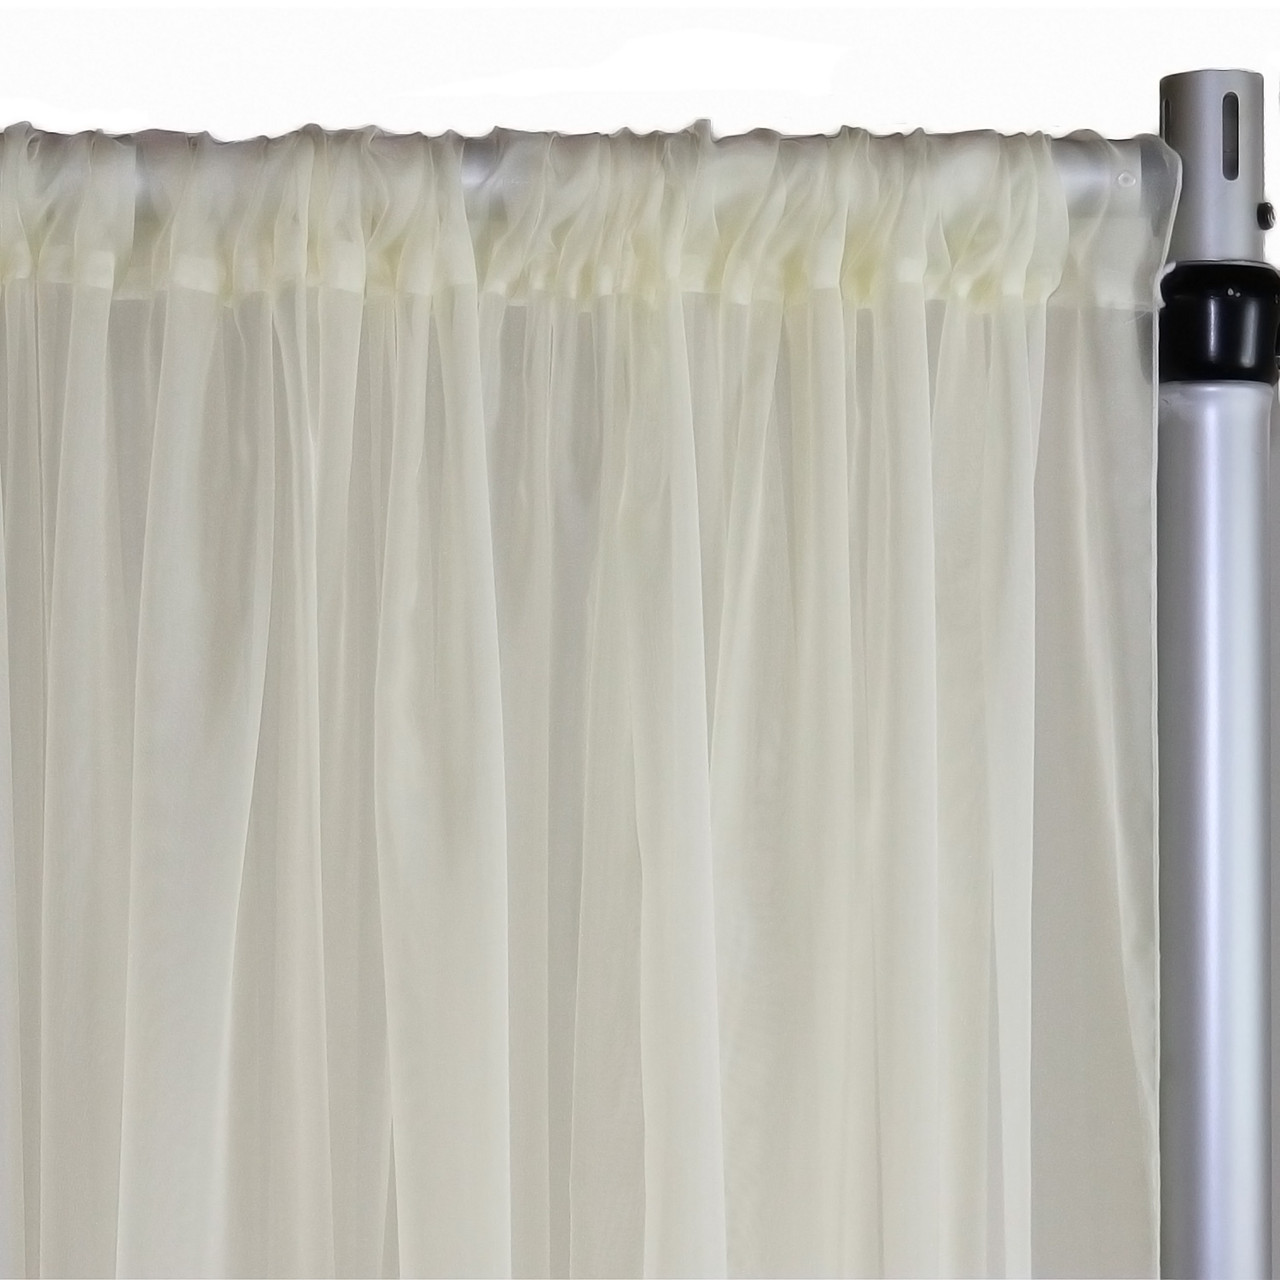 Voile Sheer Drape Backdrop 14 Ft X 116 Inches Ivory Your Chair Covers Inc